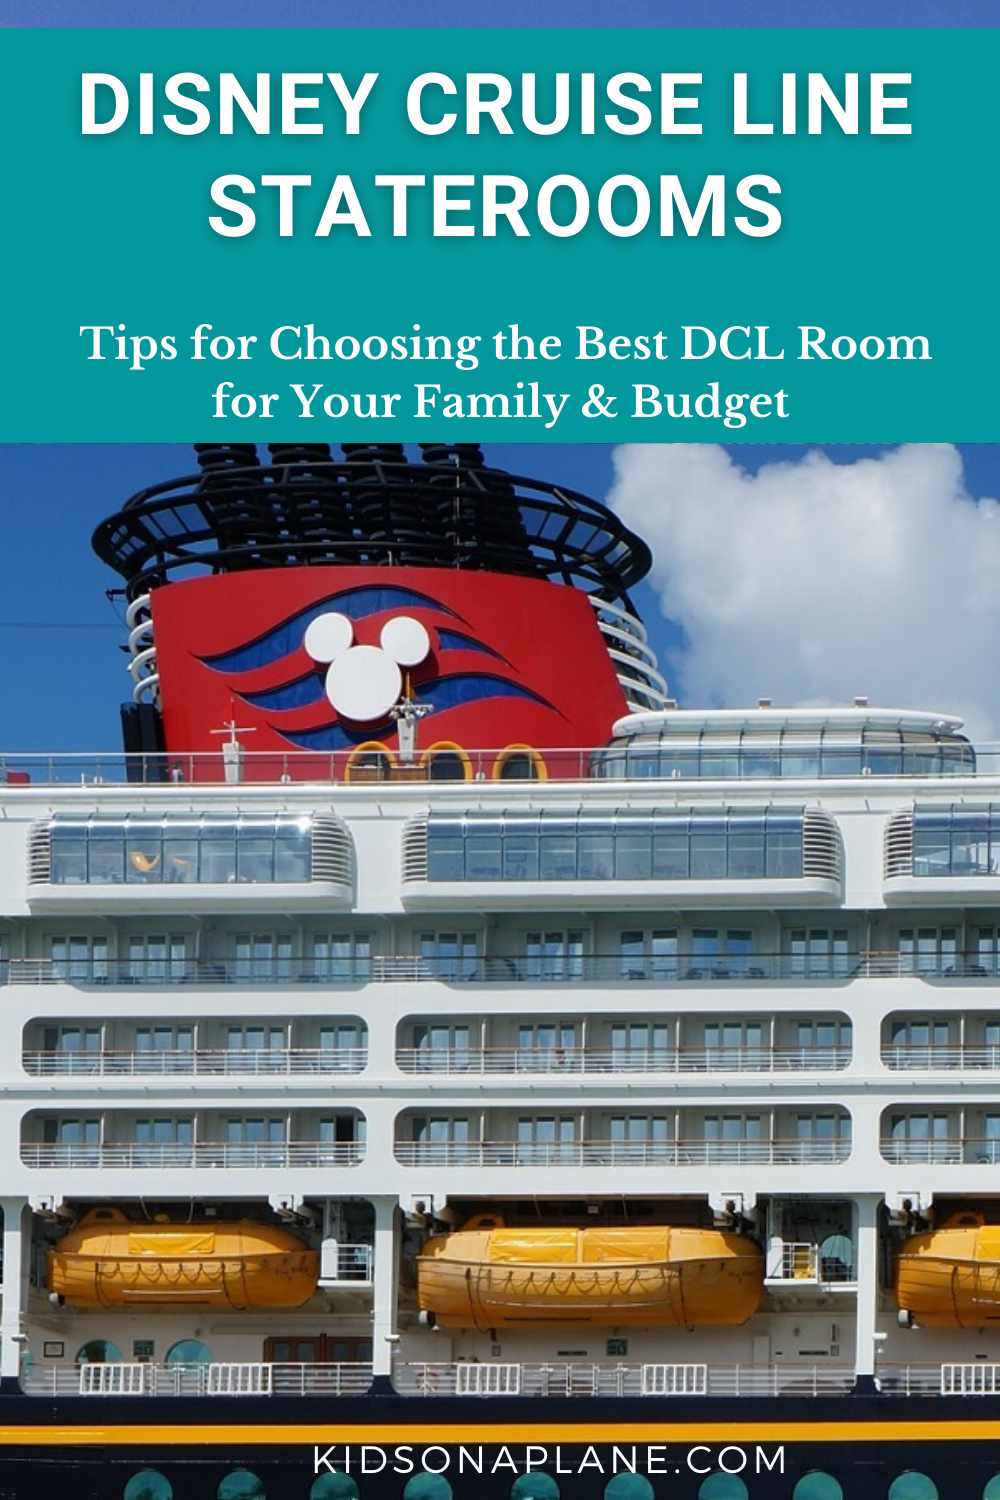 Tips for Choosing the Best Disney Cruise Line Stateroom - How to pick a DCL room for your family and budget